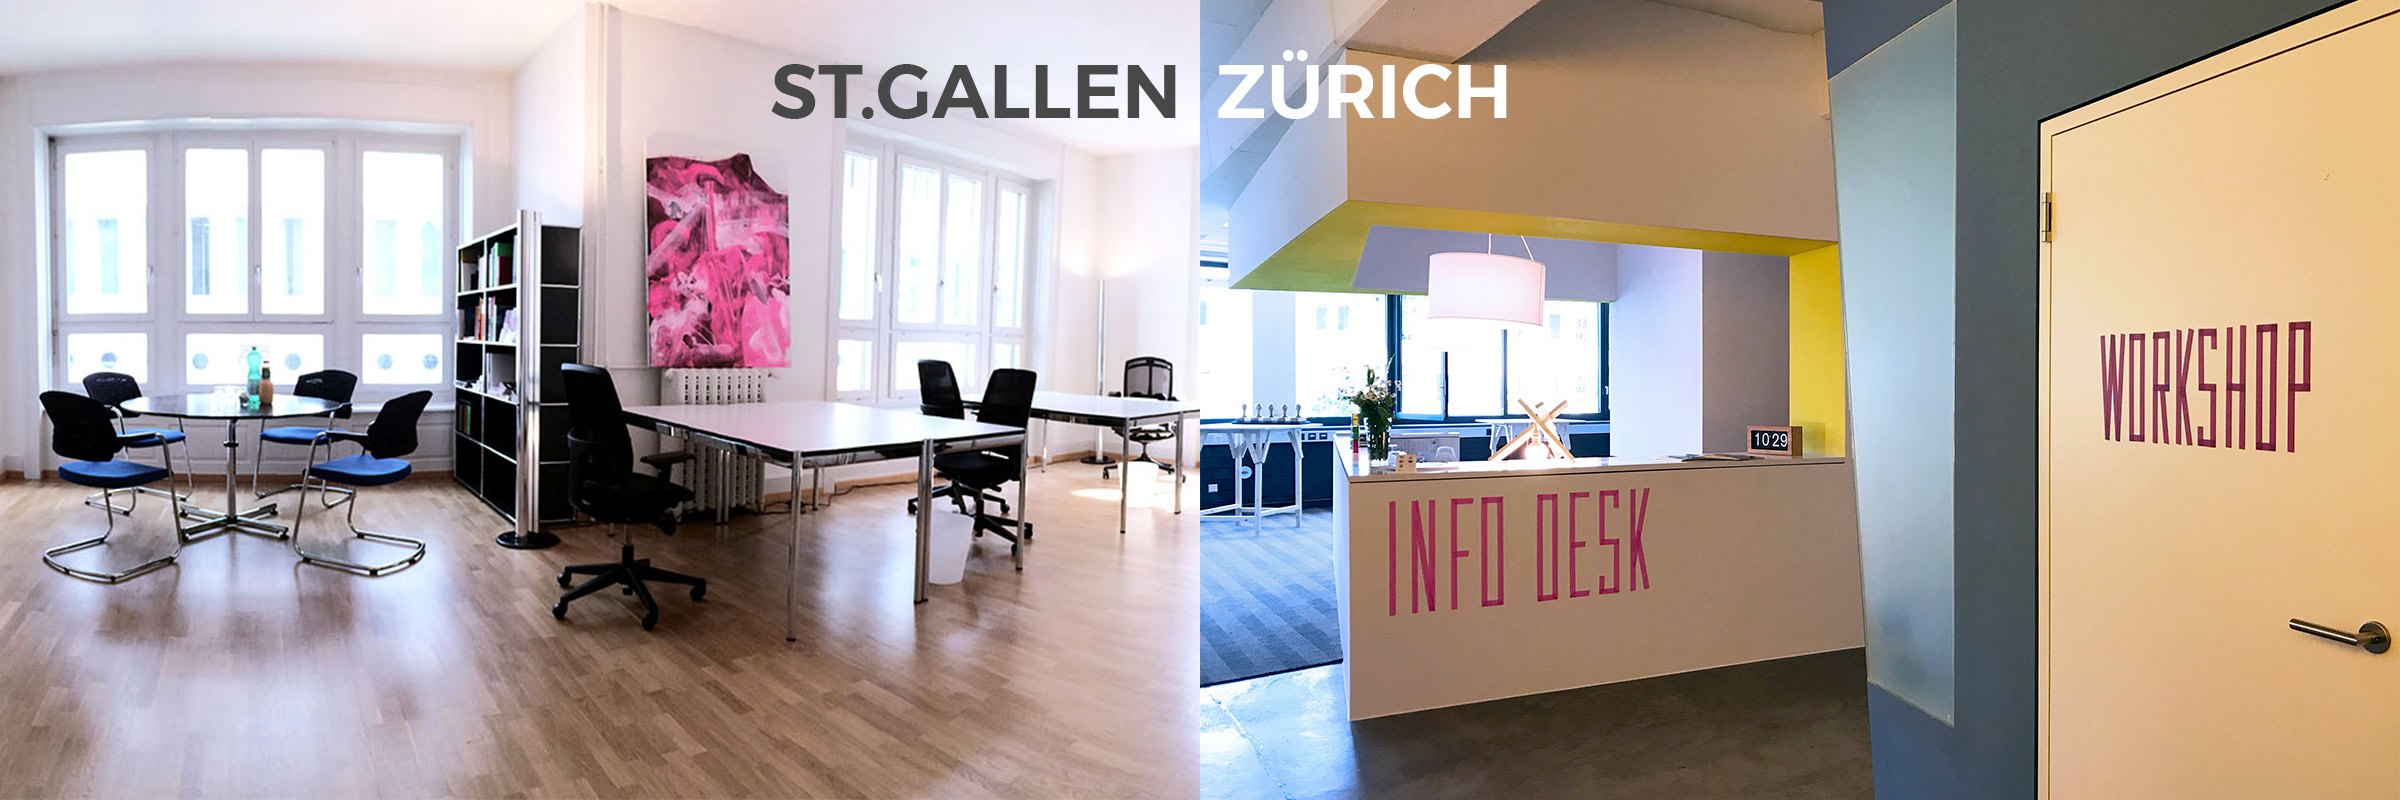 Innenansichten CreativeSpace - Coworking Spaces in Zürich und St.Gallen